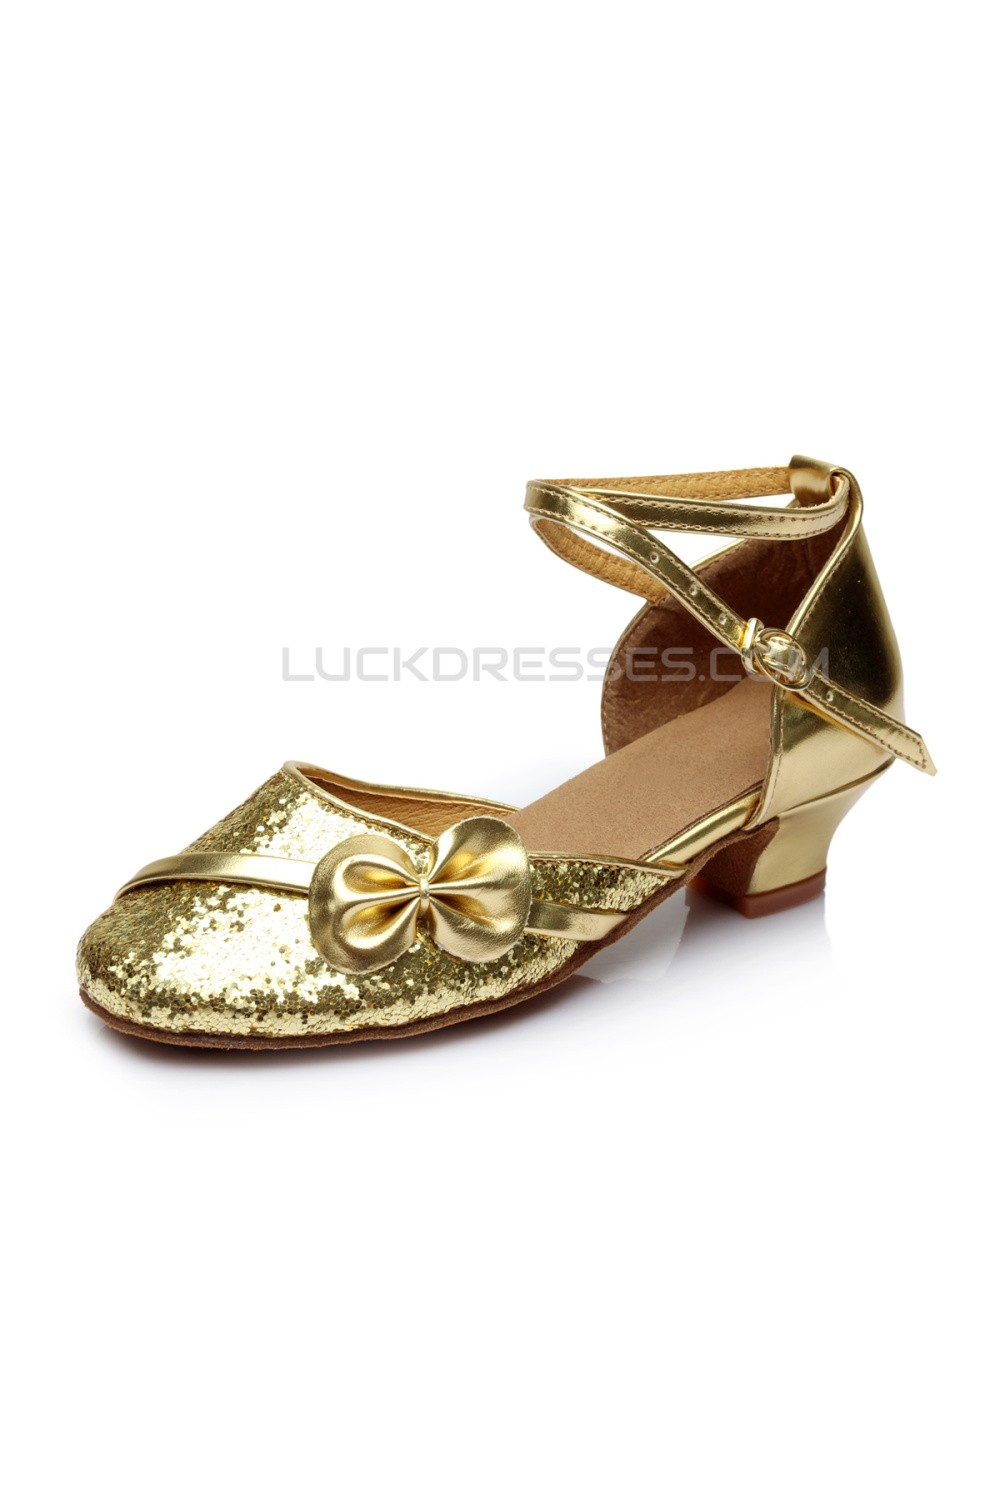 2e9c1a035220 Women s Kids  Gold Sparkling Glitter Flats Latin Modern Dance Shoes Chunky  Heels Wedding Party Shoes D601030